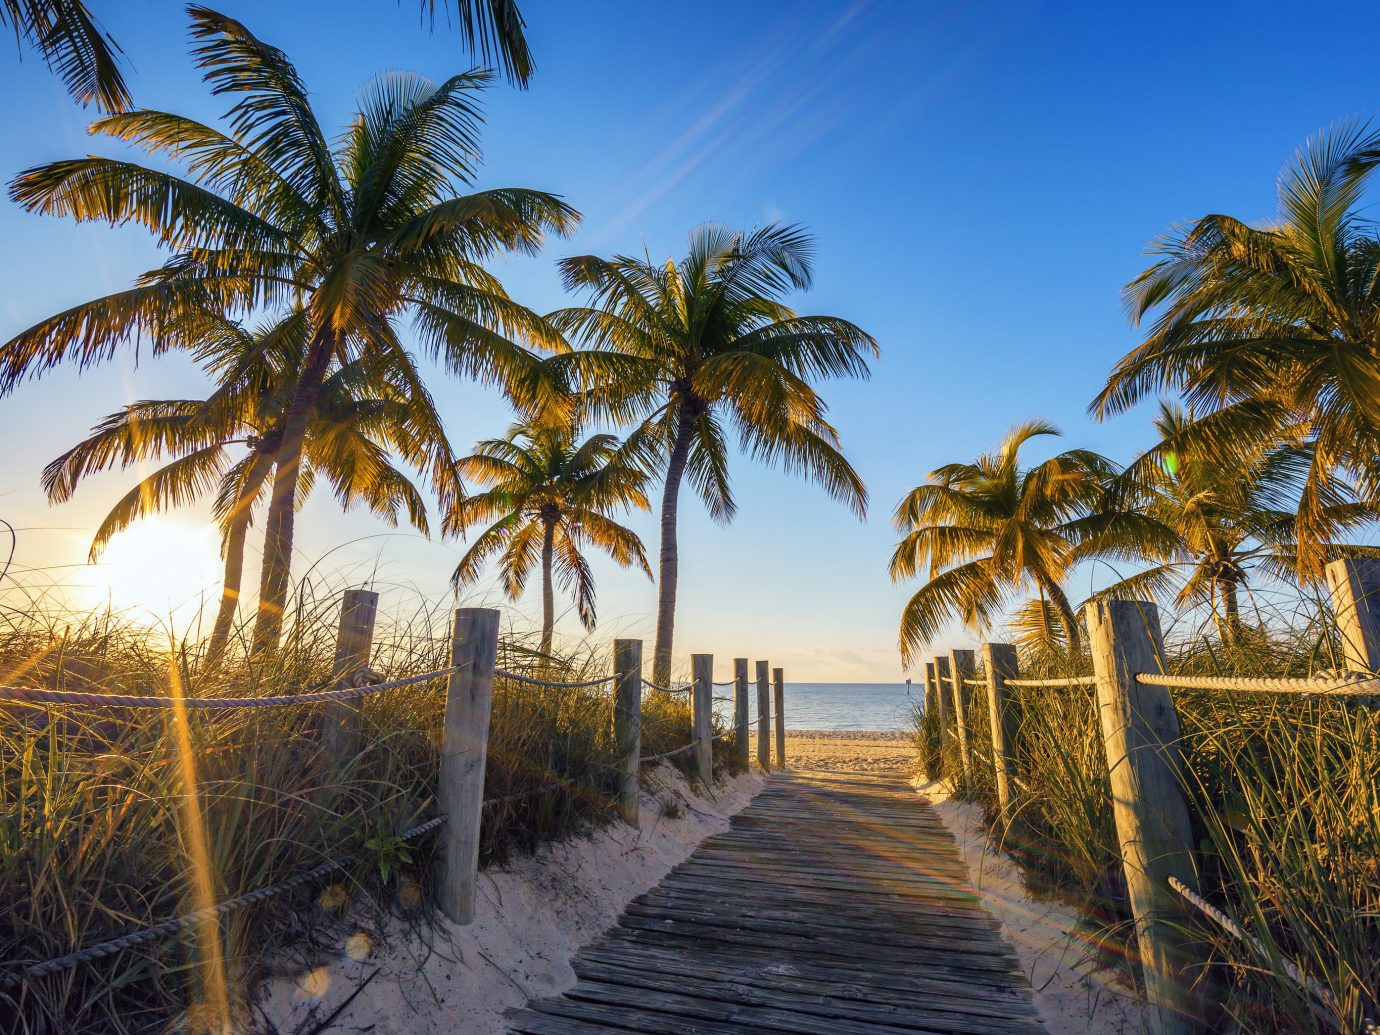 Trip Ideas tree outdoor palm sky grass Beach palm family body of water plant walkway Coast Ocean arecales woody plant Sea land plant vacation sunlight tropics Sunset flowering plant boardwalk area lined bushes sandy shade